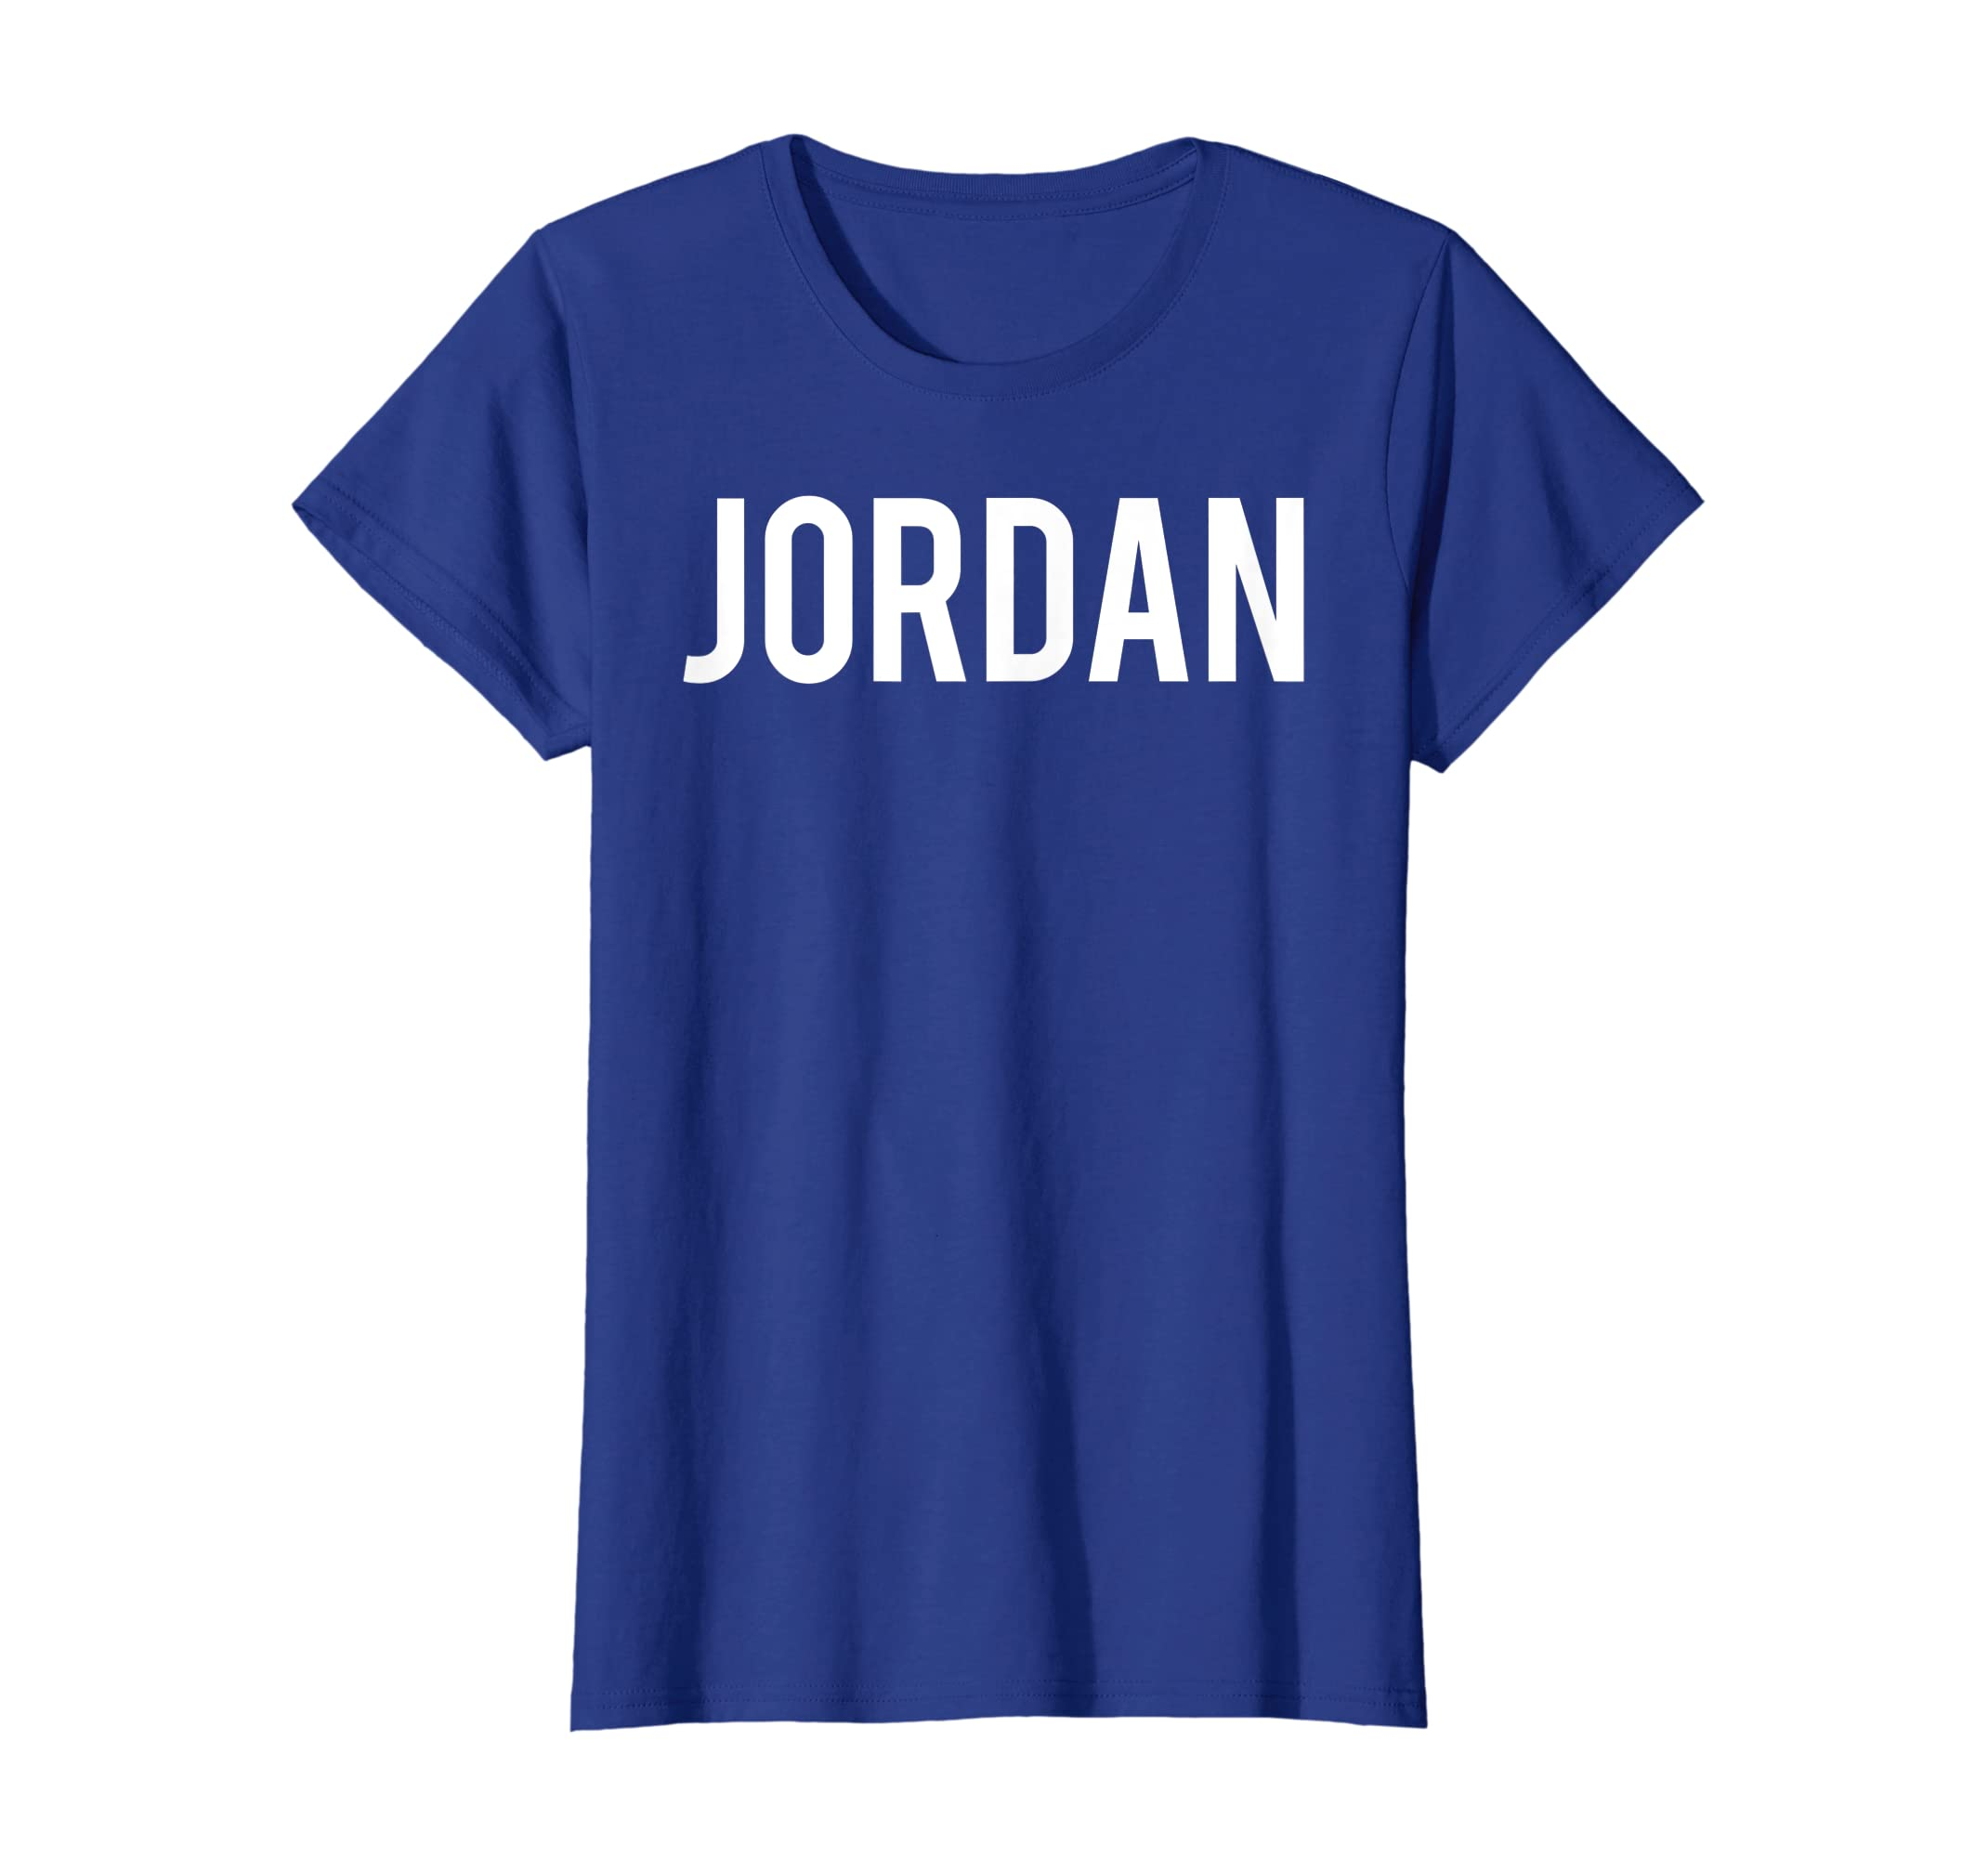 54a8e1b9515ecf Amazon.com  Jordan T Shirt - Cool new funny name fan cheap gift tee   Clothing